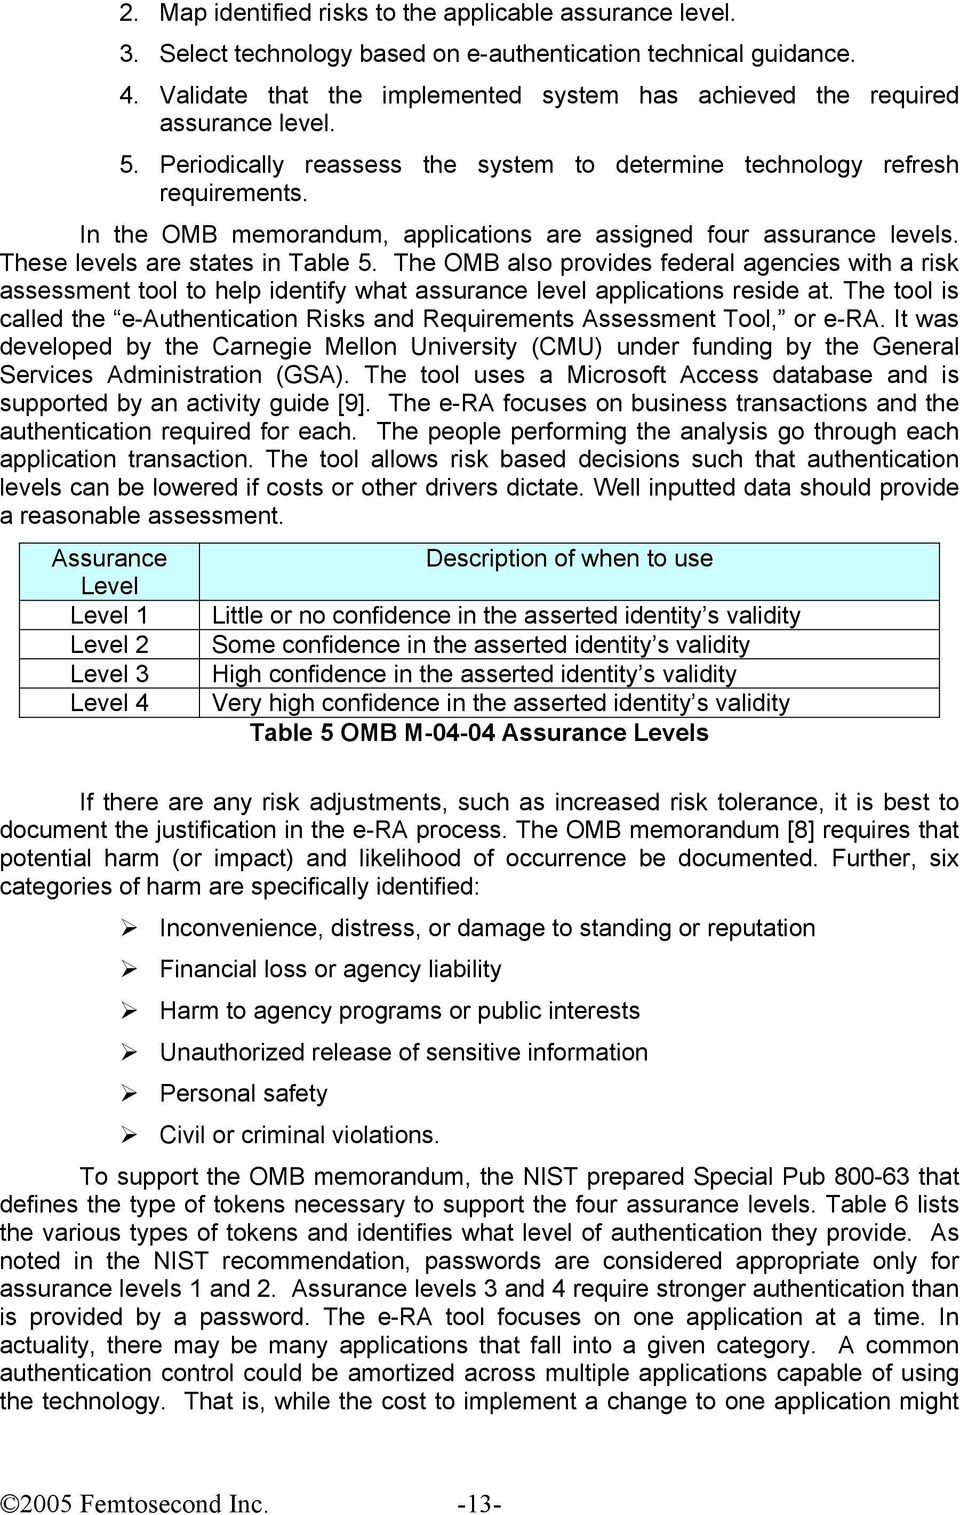 In the OMB memorandum, applications are assigned four assurance levels. These levels are states in Table 5.